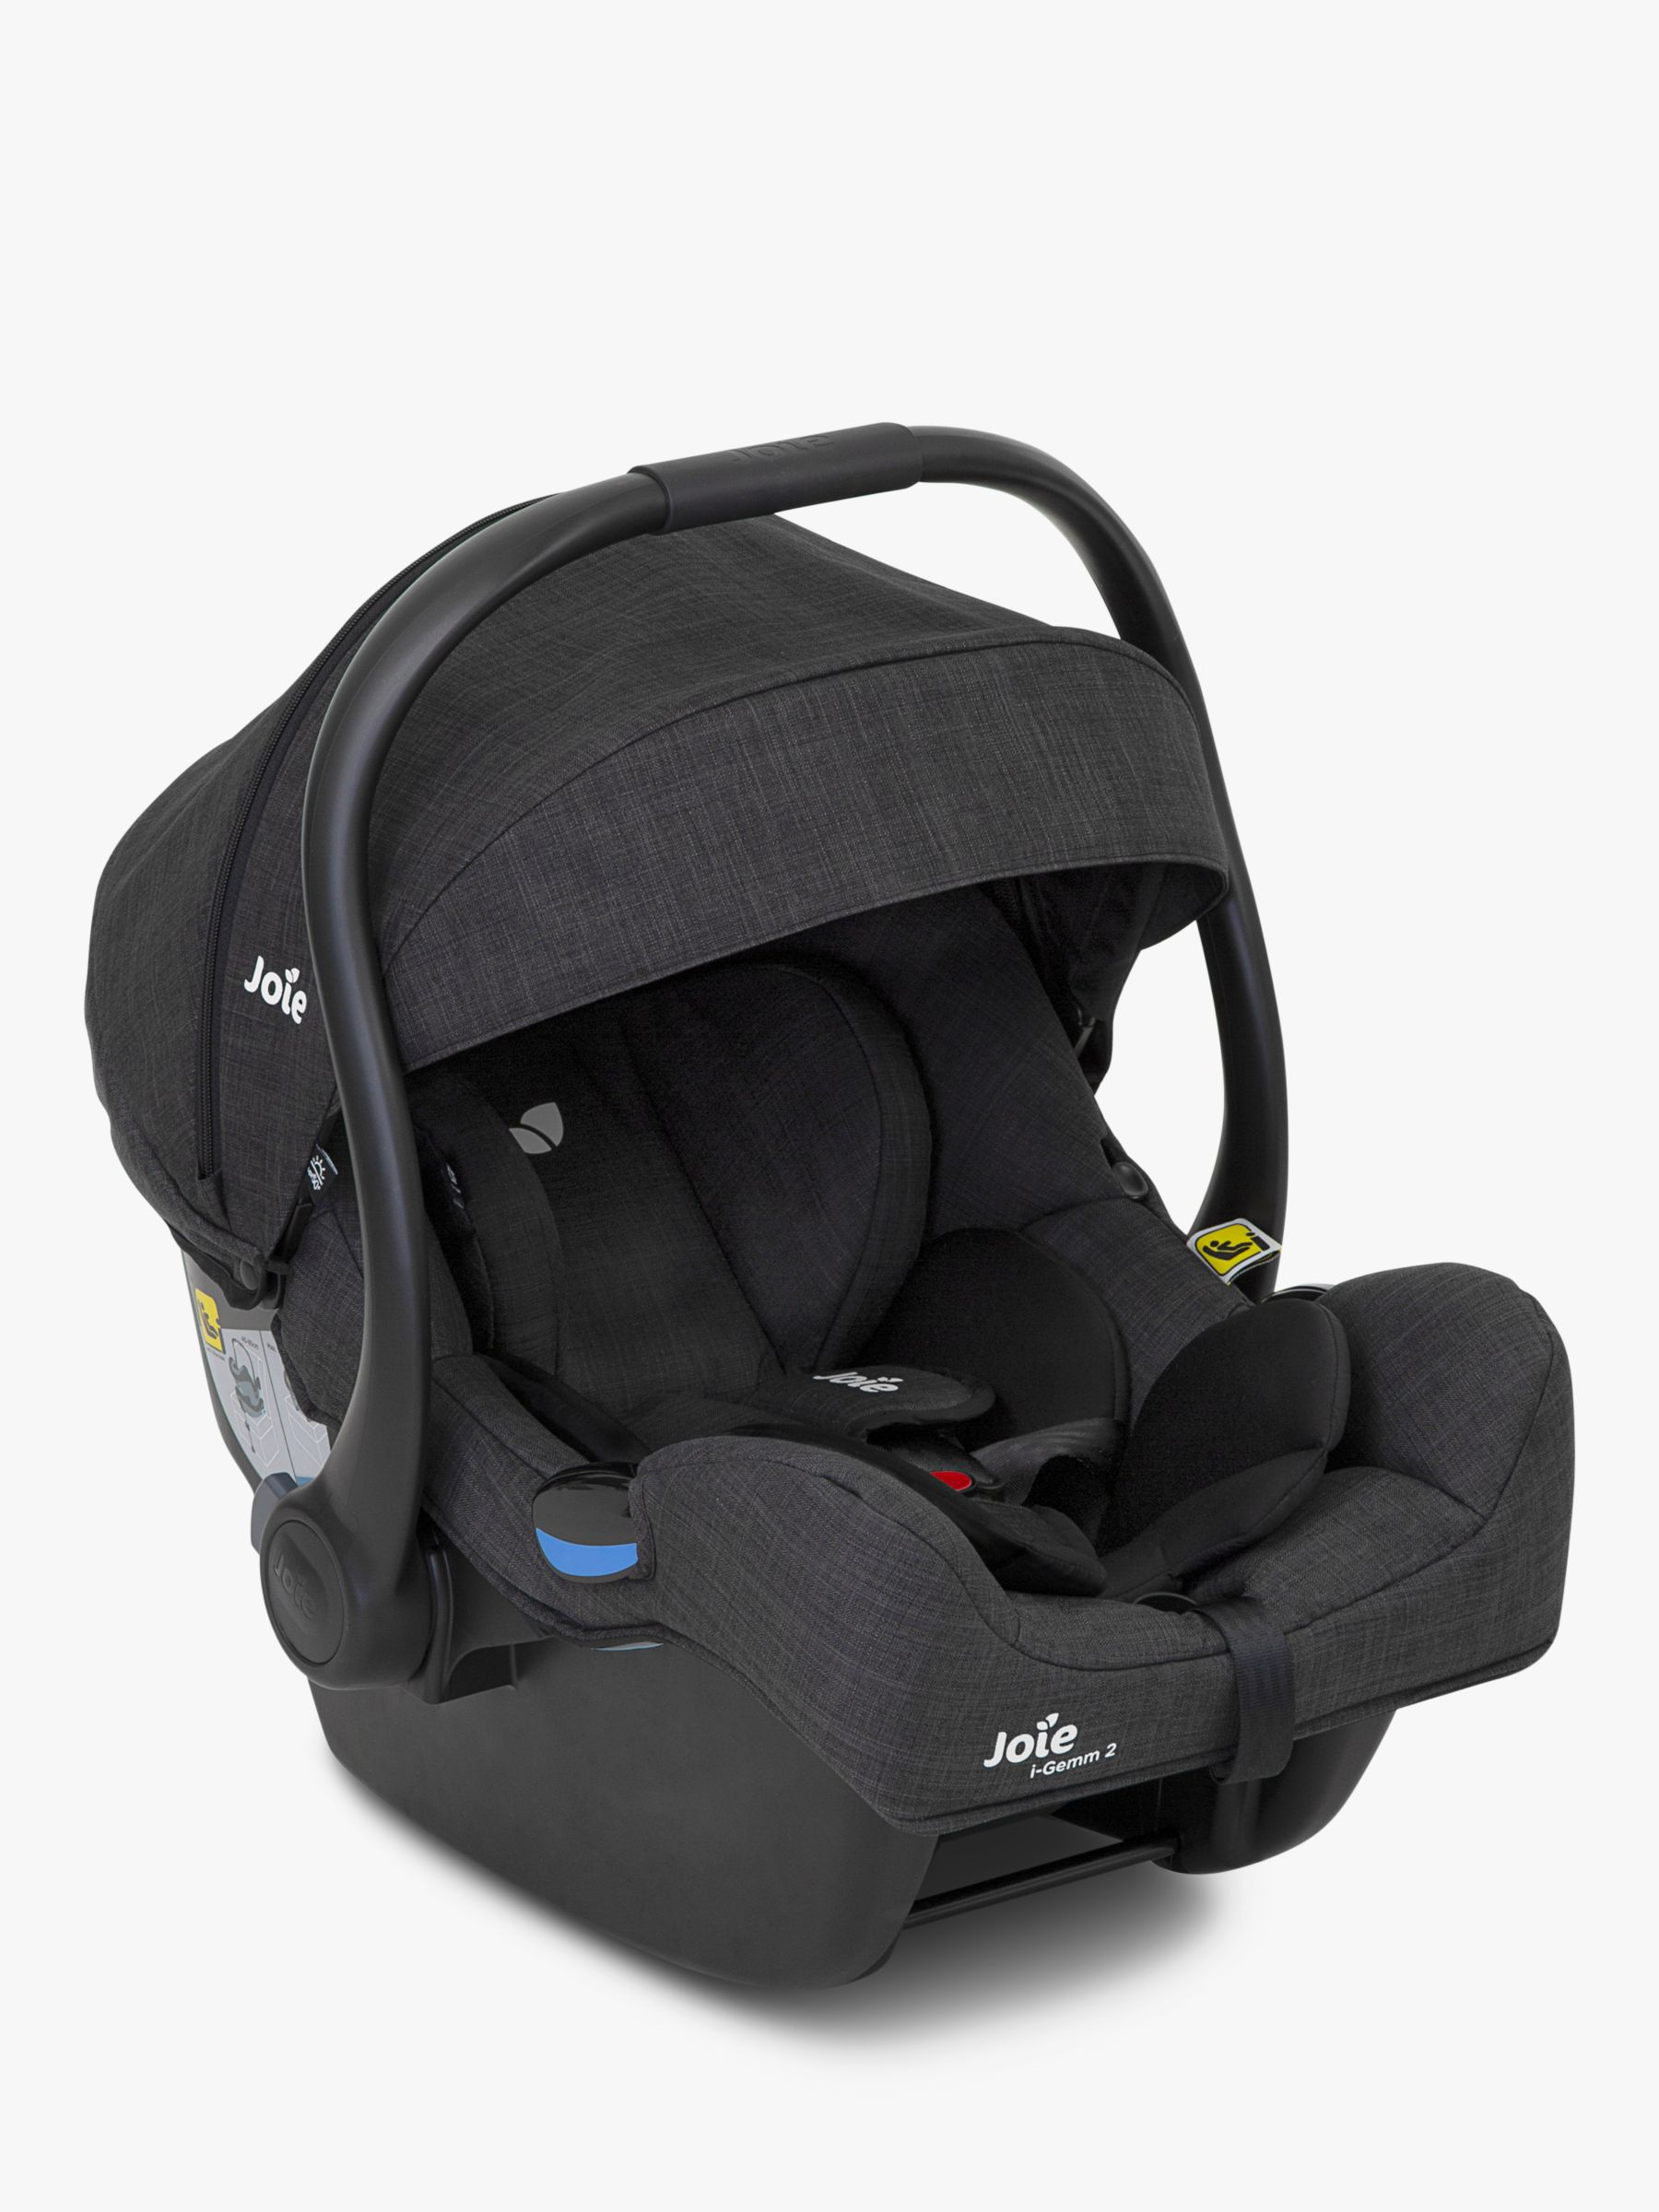 Joie Baby Joie i-Gemm Group 0+ Baby Car Seat, Pavement Grey